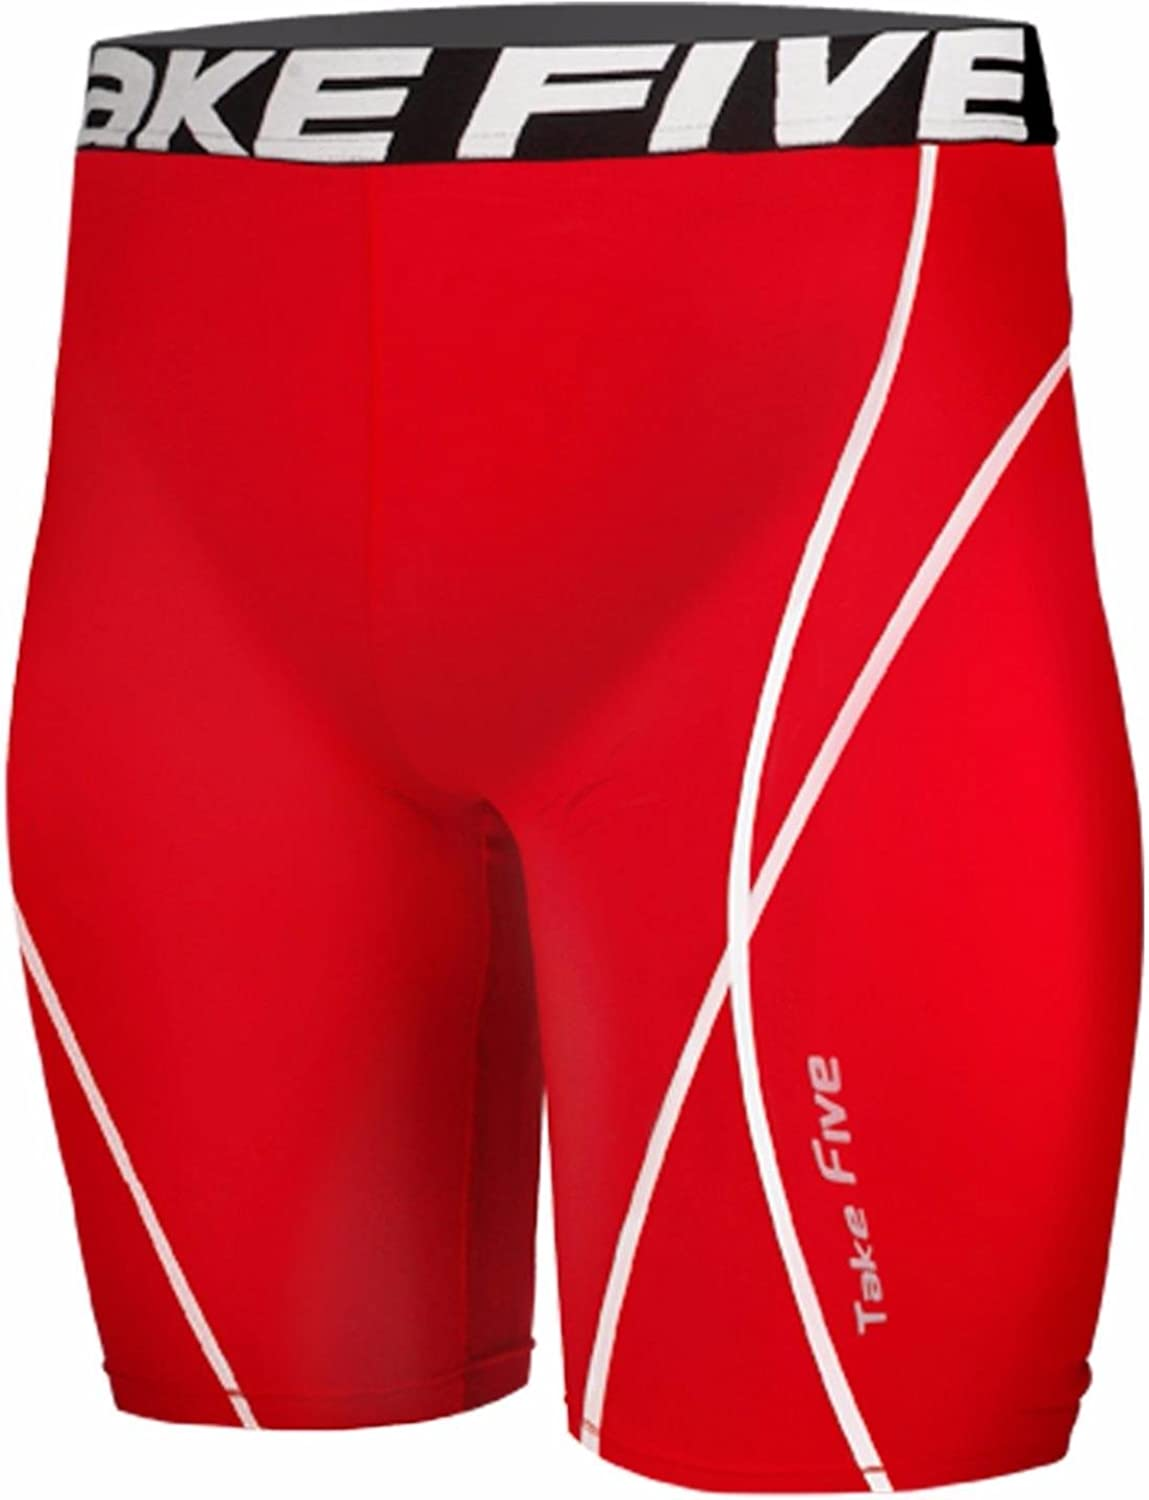 New 083 Skin Tights Compression Base Layer Red Running Short Pants Mens